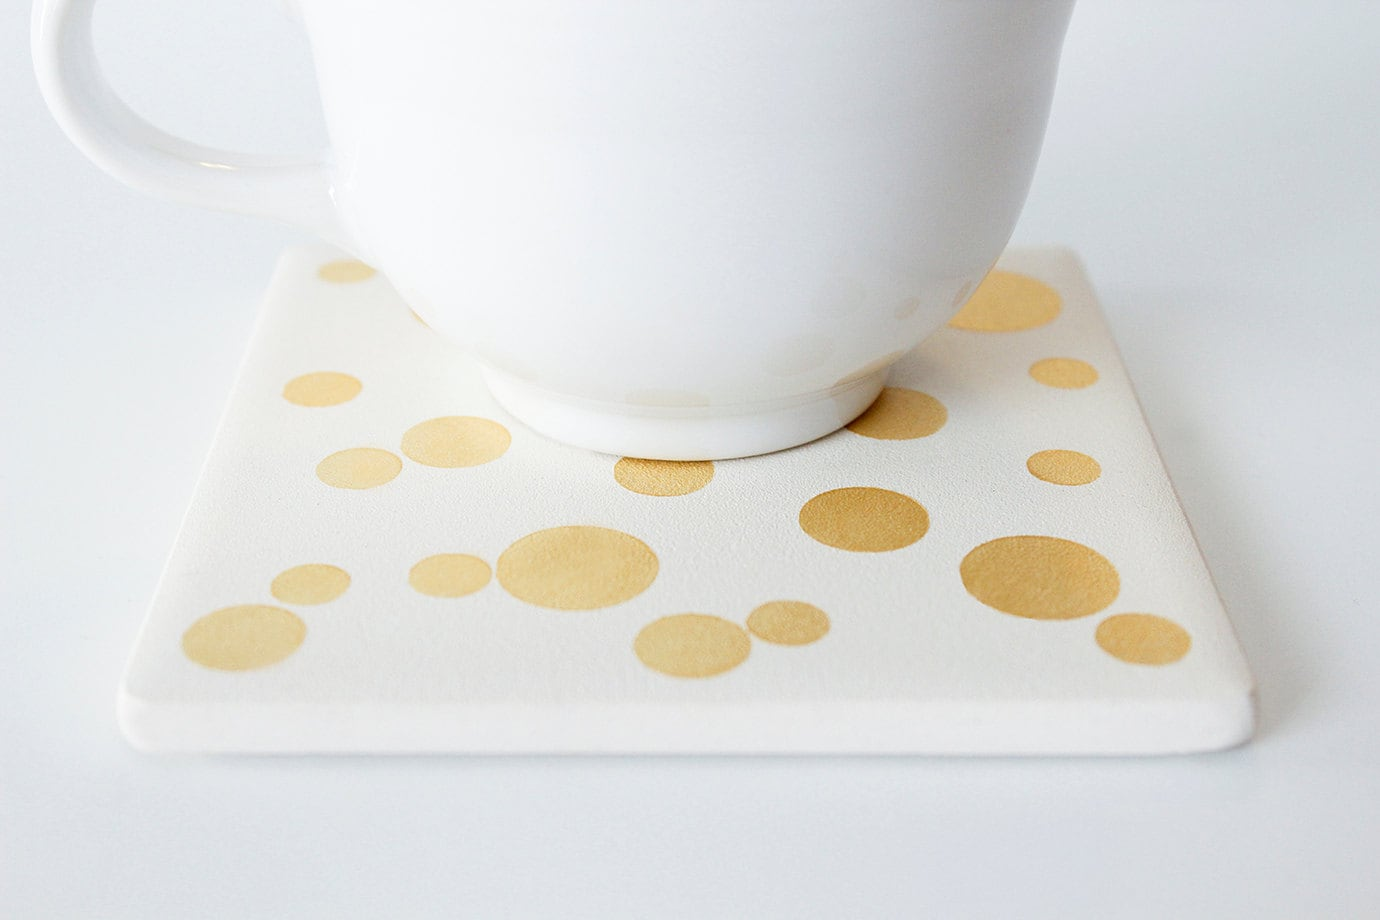 Gold Dotted Coasters Hand Painted White and Gold Ceramic Tile Coasters - Set of 4 Coasters - theCoastal